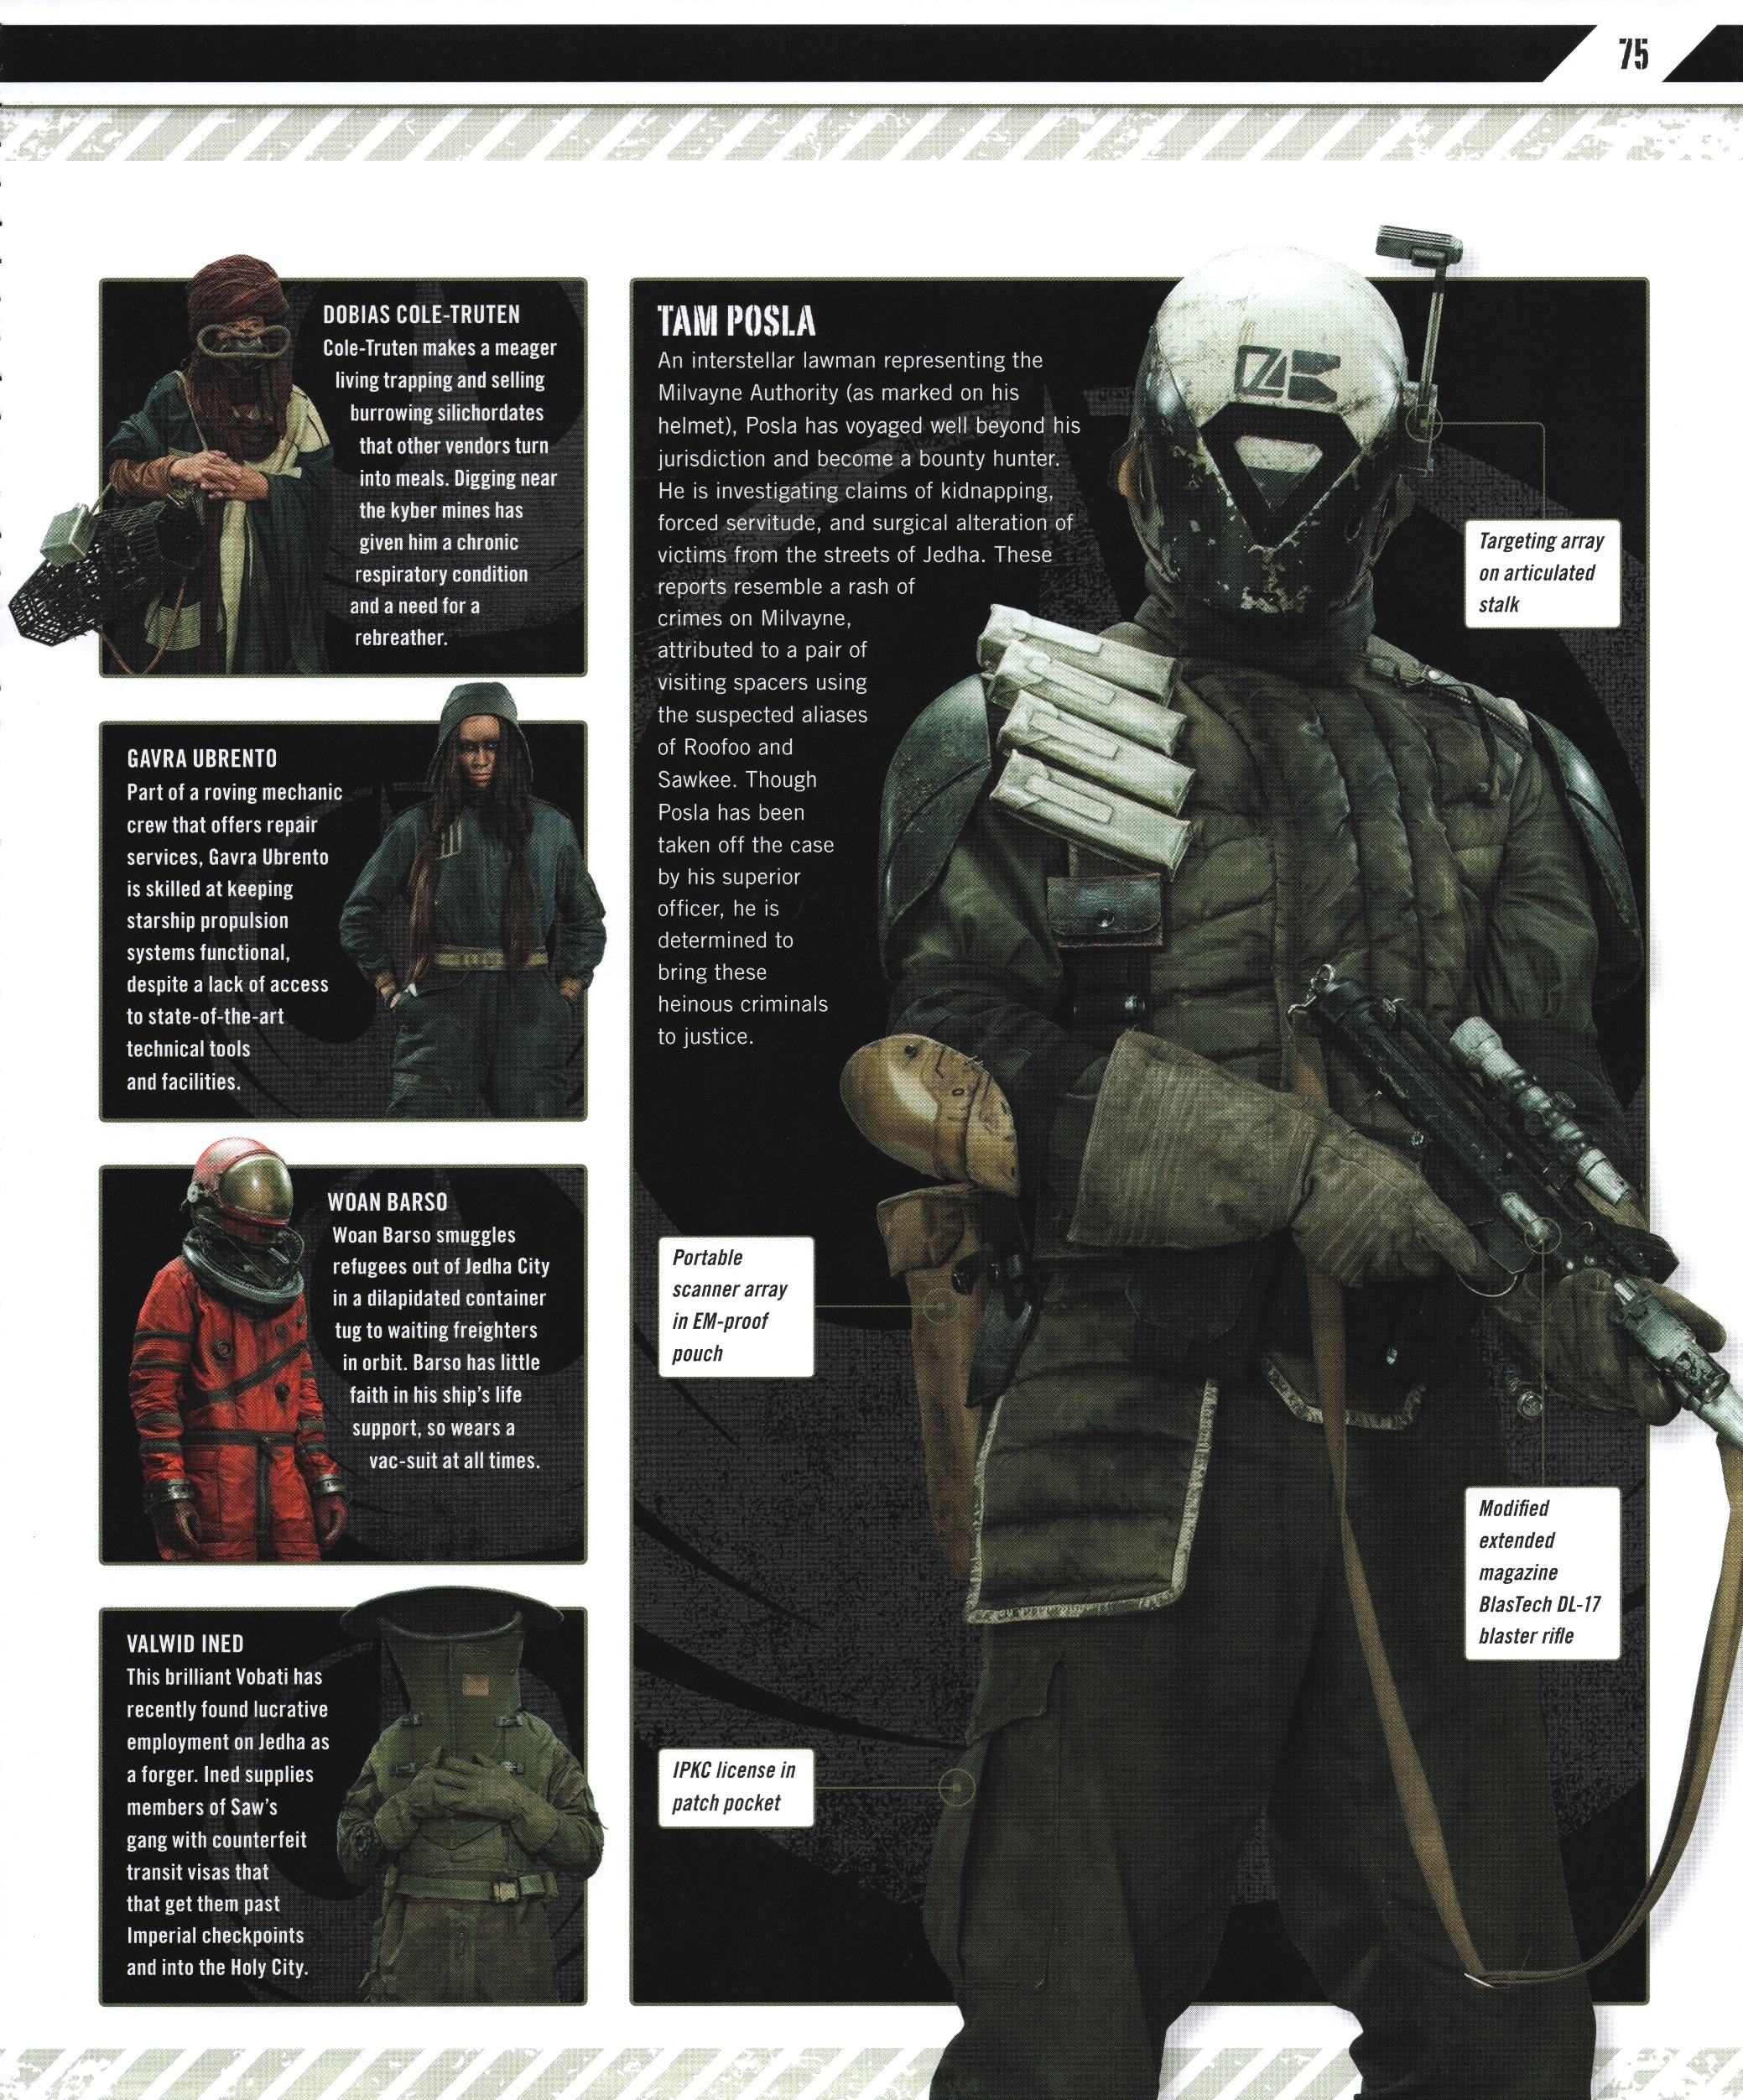 Rogue One Ultimate Visual Guide (b0bafett_Empire) p075